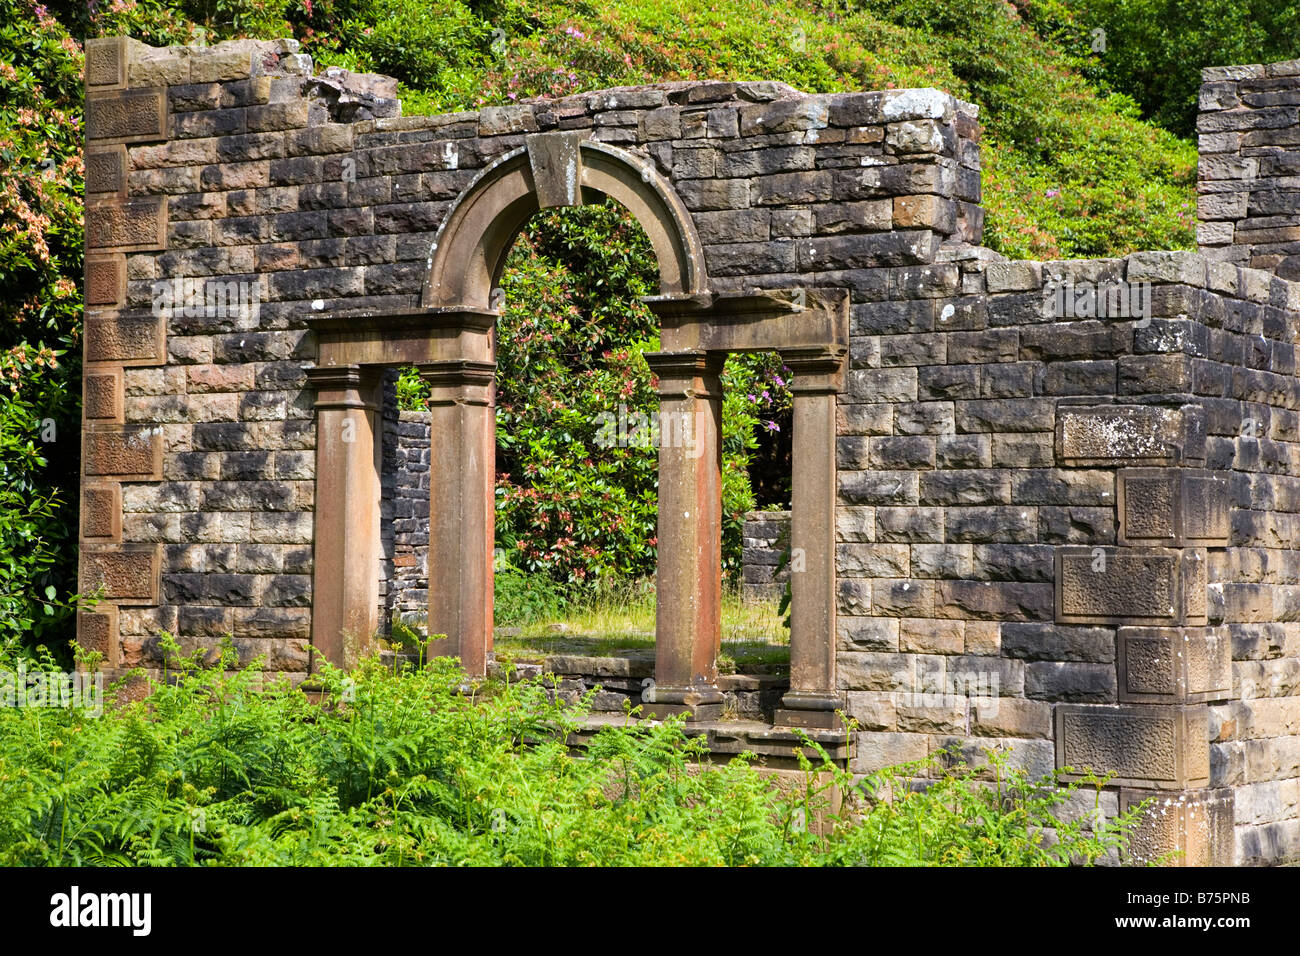 View of the Ruins of Errwood Hall in the Goyt Valley in the Peak District in Derbyshire - Stock Image